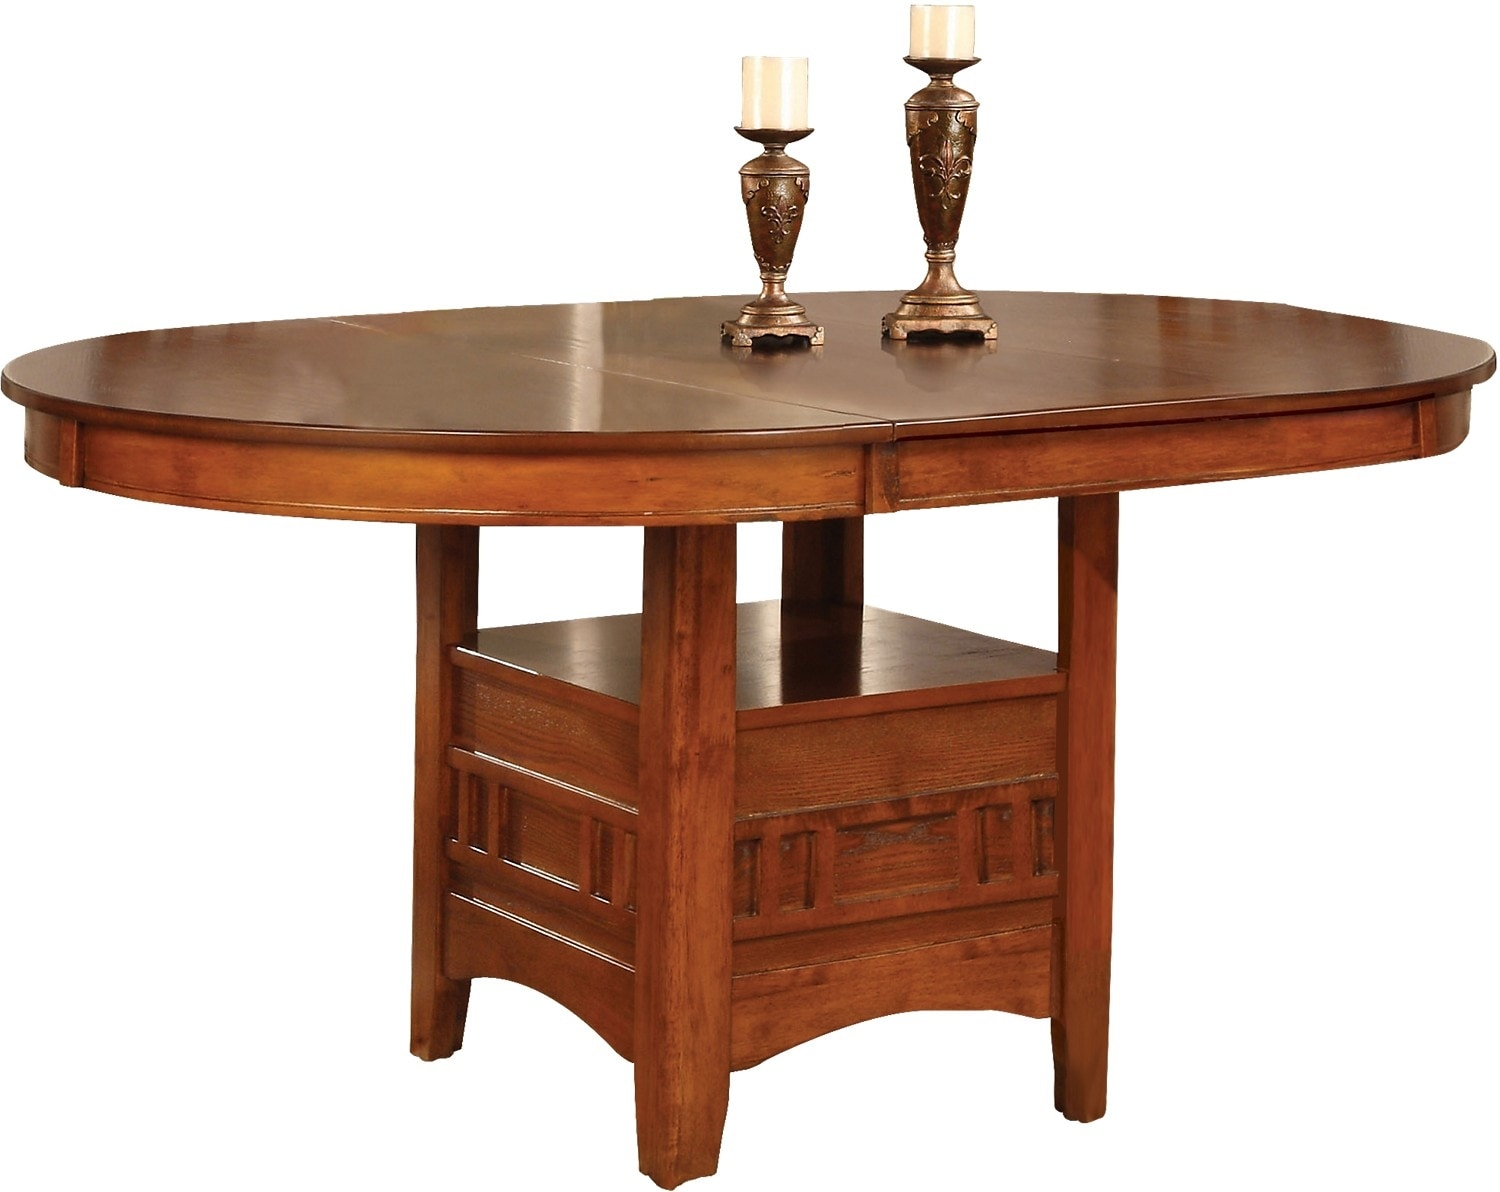 Oak Dining Table Hover To Zoom